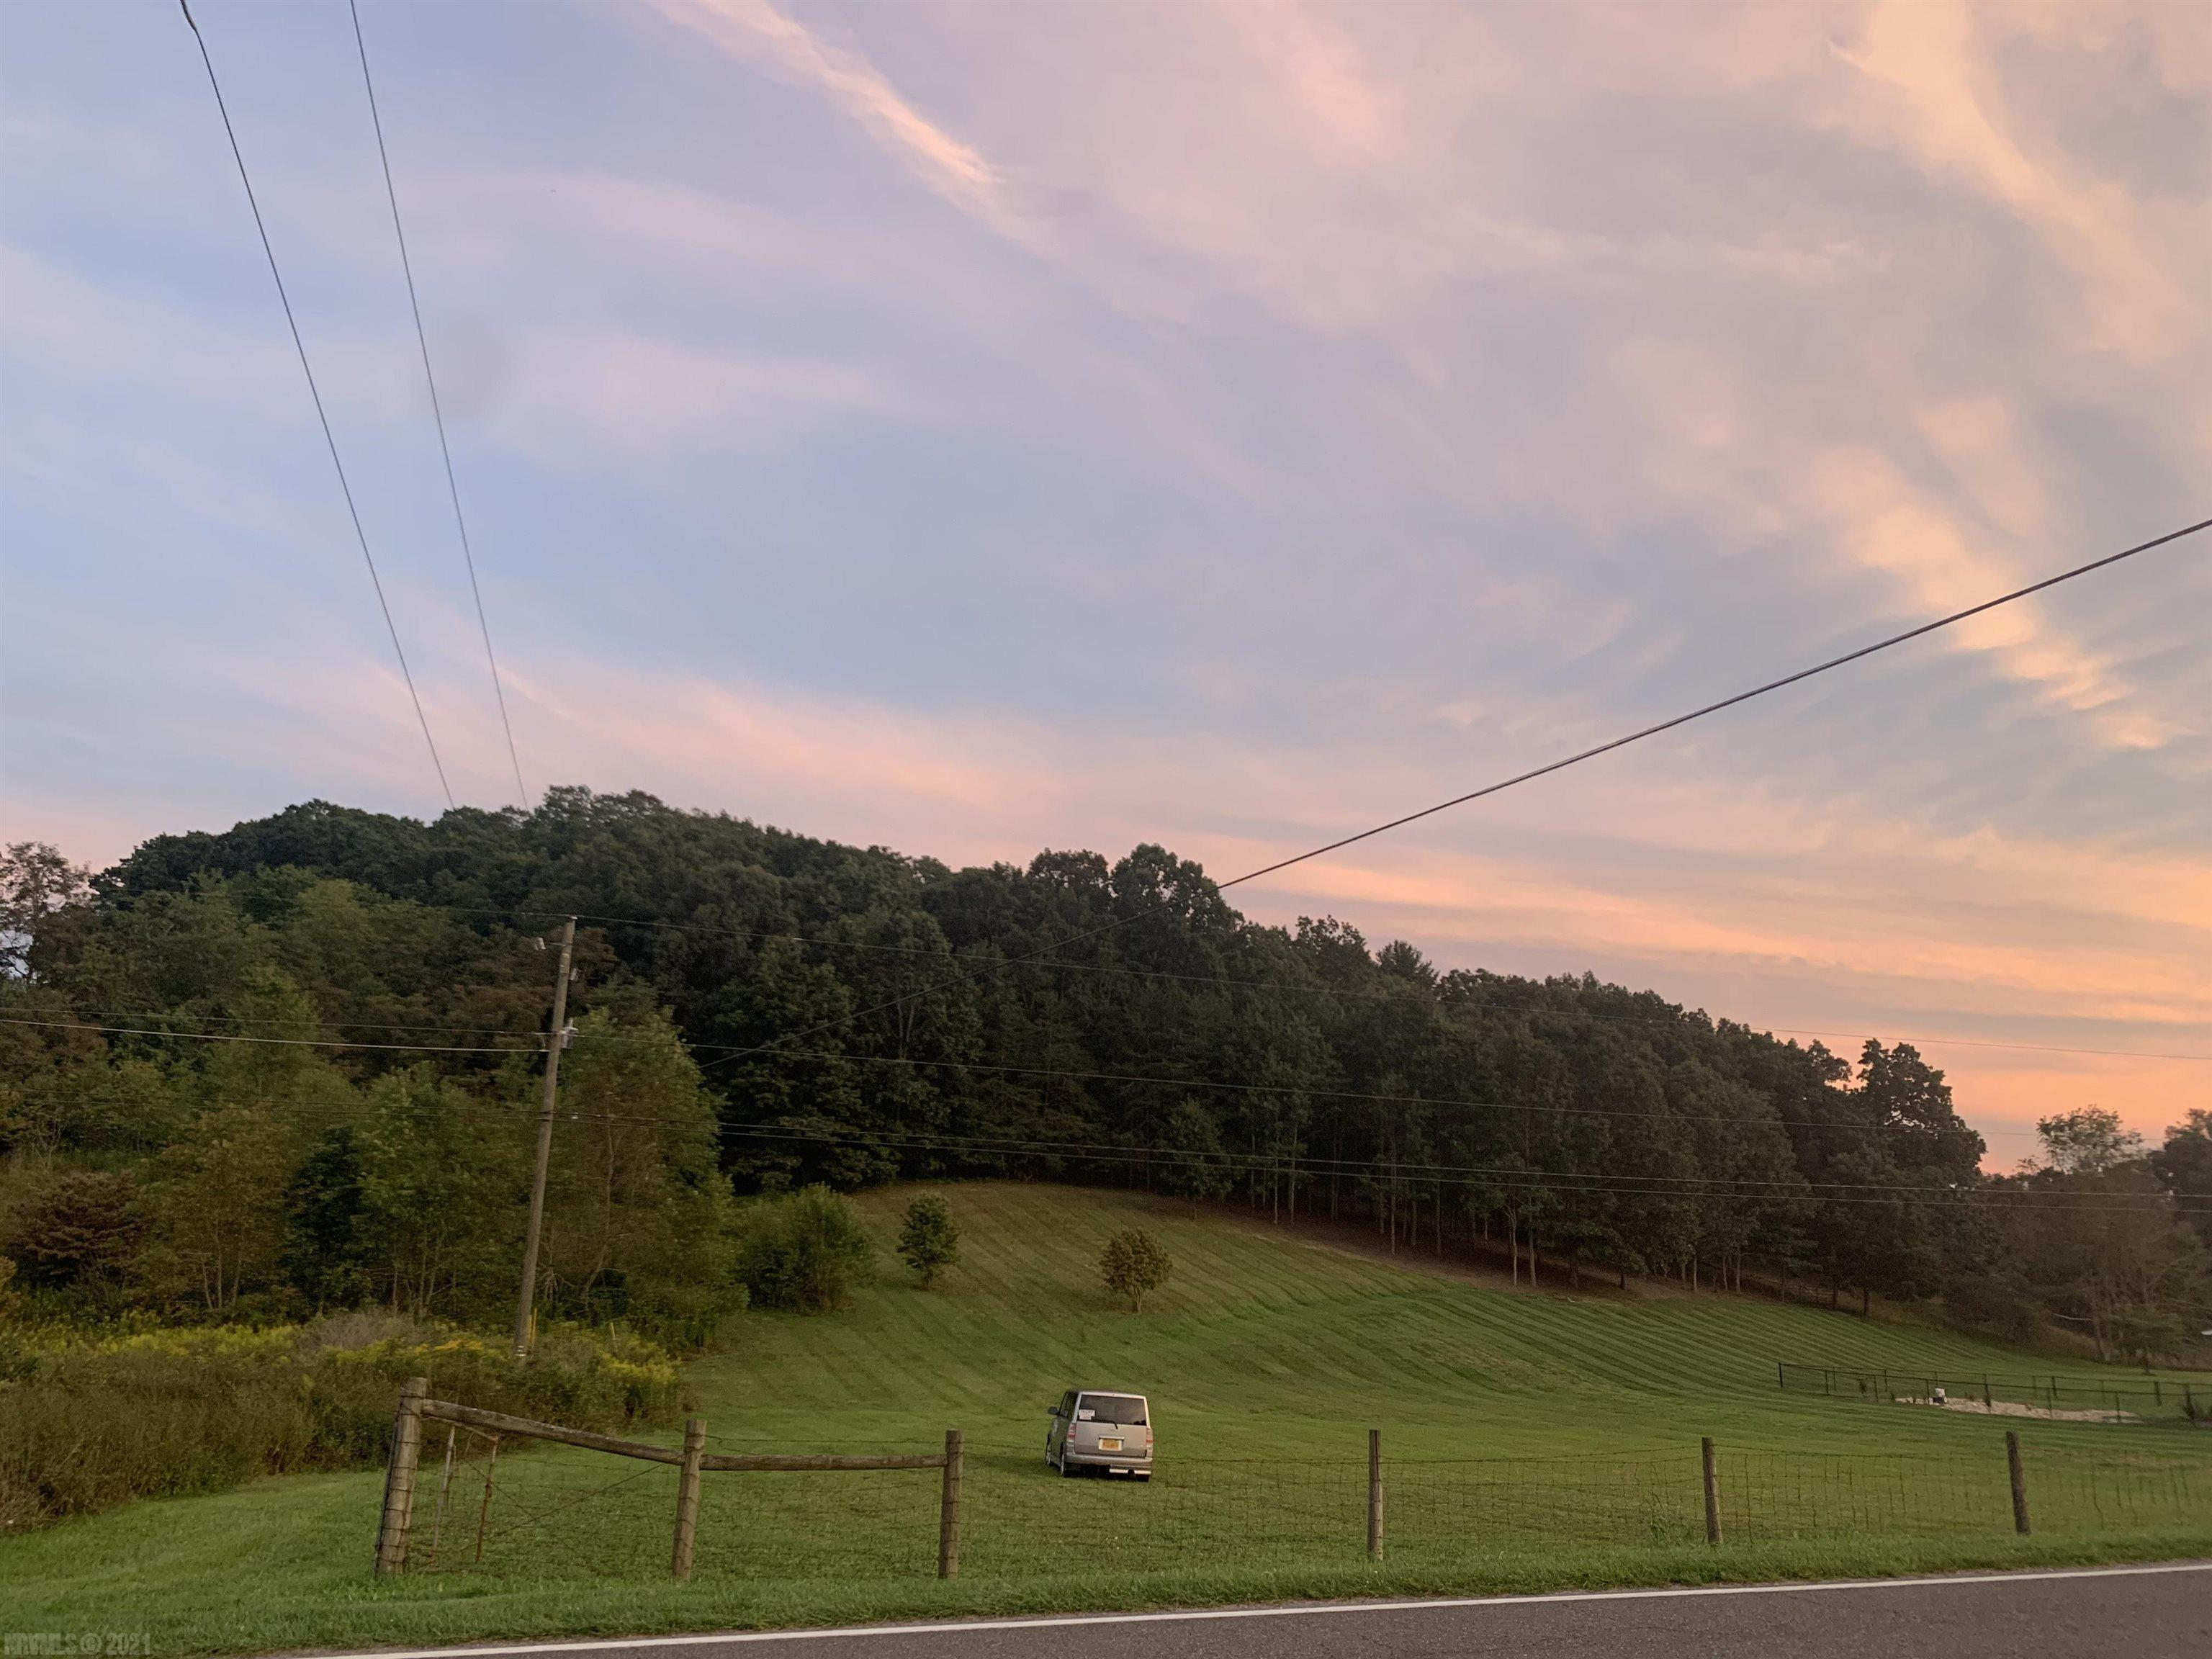 Really Nice 4.105 Ac. Lot in the County. This Property is only 5 Minutes from the Radford Hospital. The County Verified that you can split the Property into 3 Lots. The Property would need to be perked.